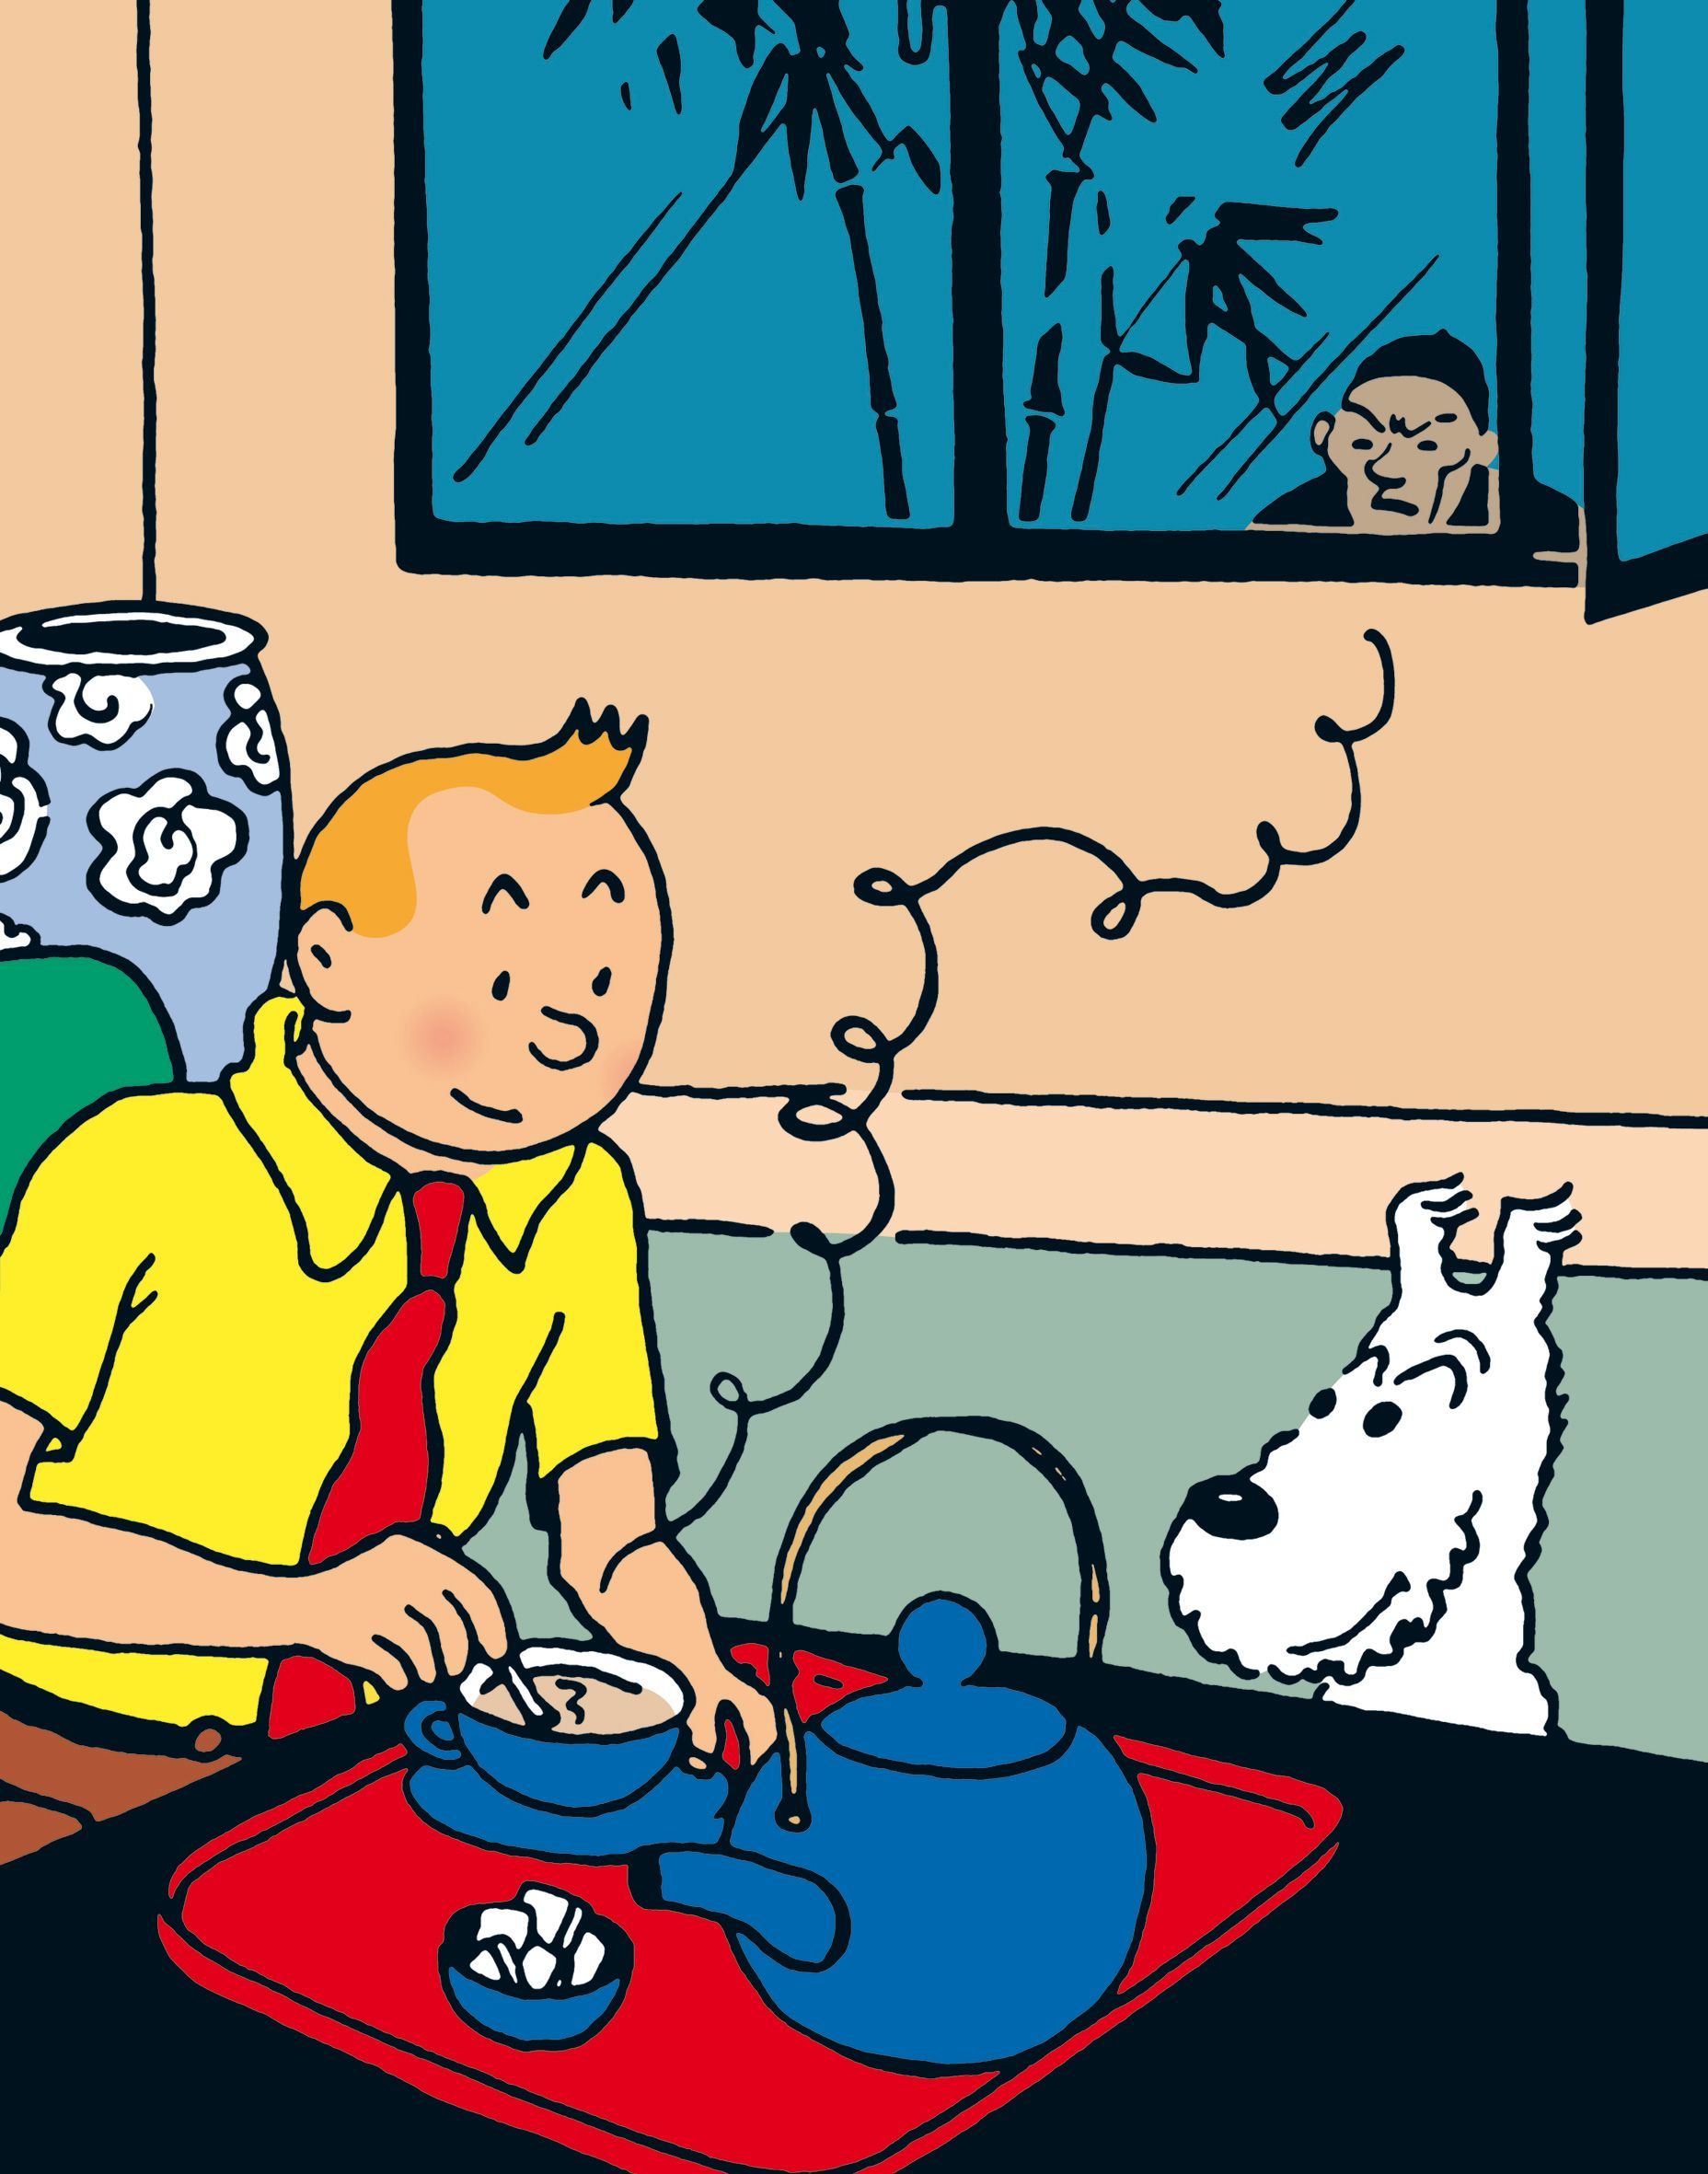 Tintin and Snowy drinking tea in The Blue Lotus, while a shadowy figure looms outside the window.